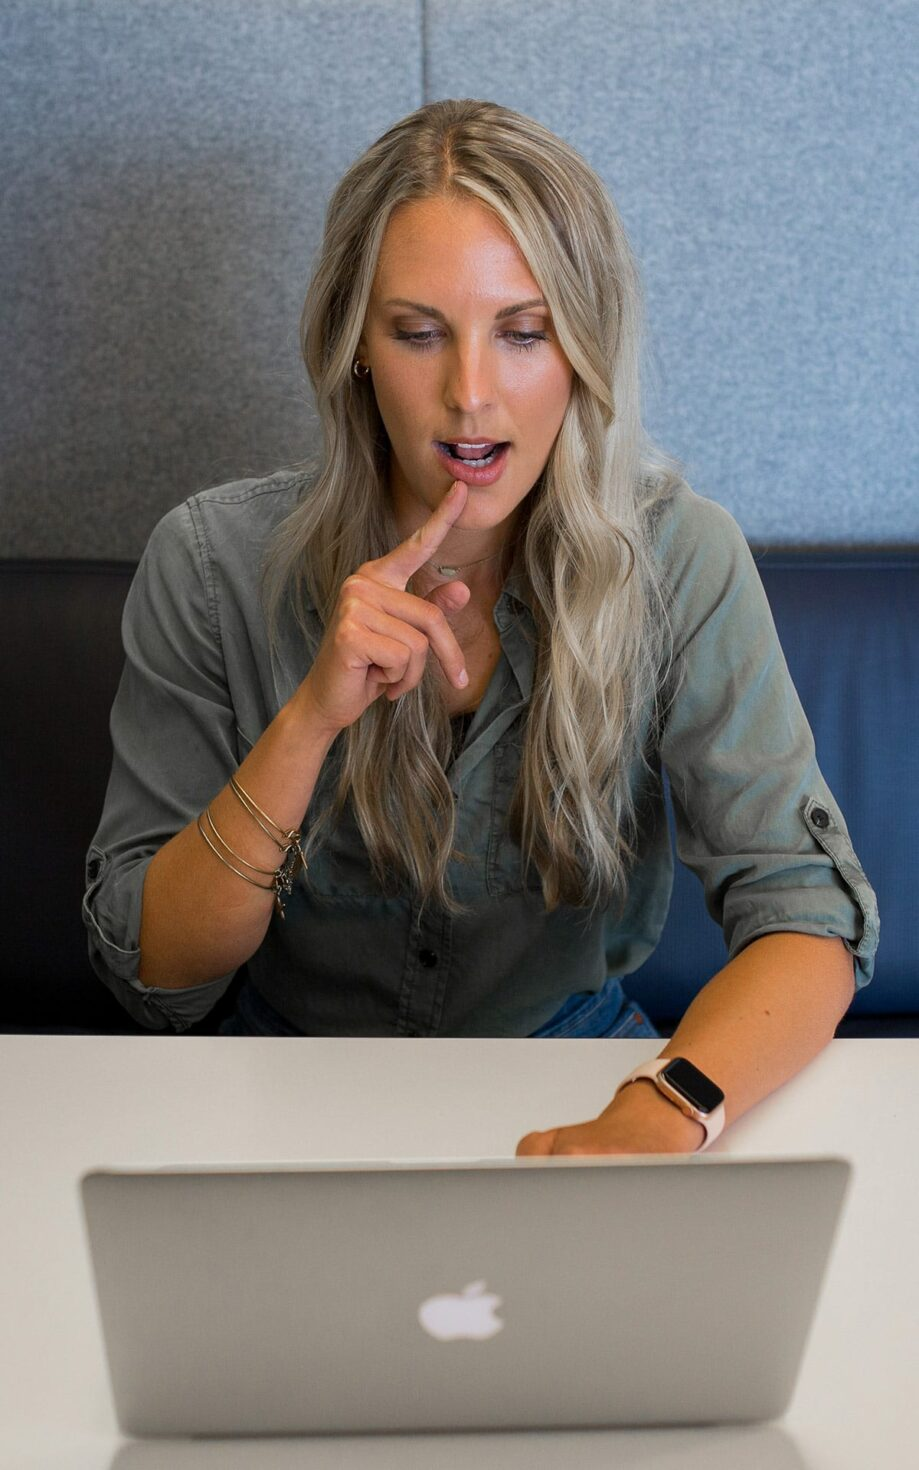 A therapist pointing to her mouth during a videoconference call